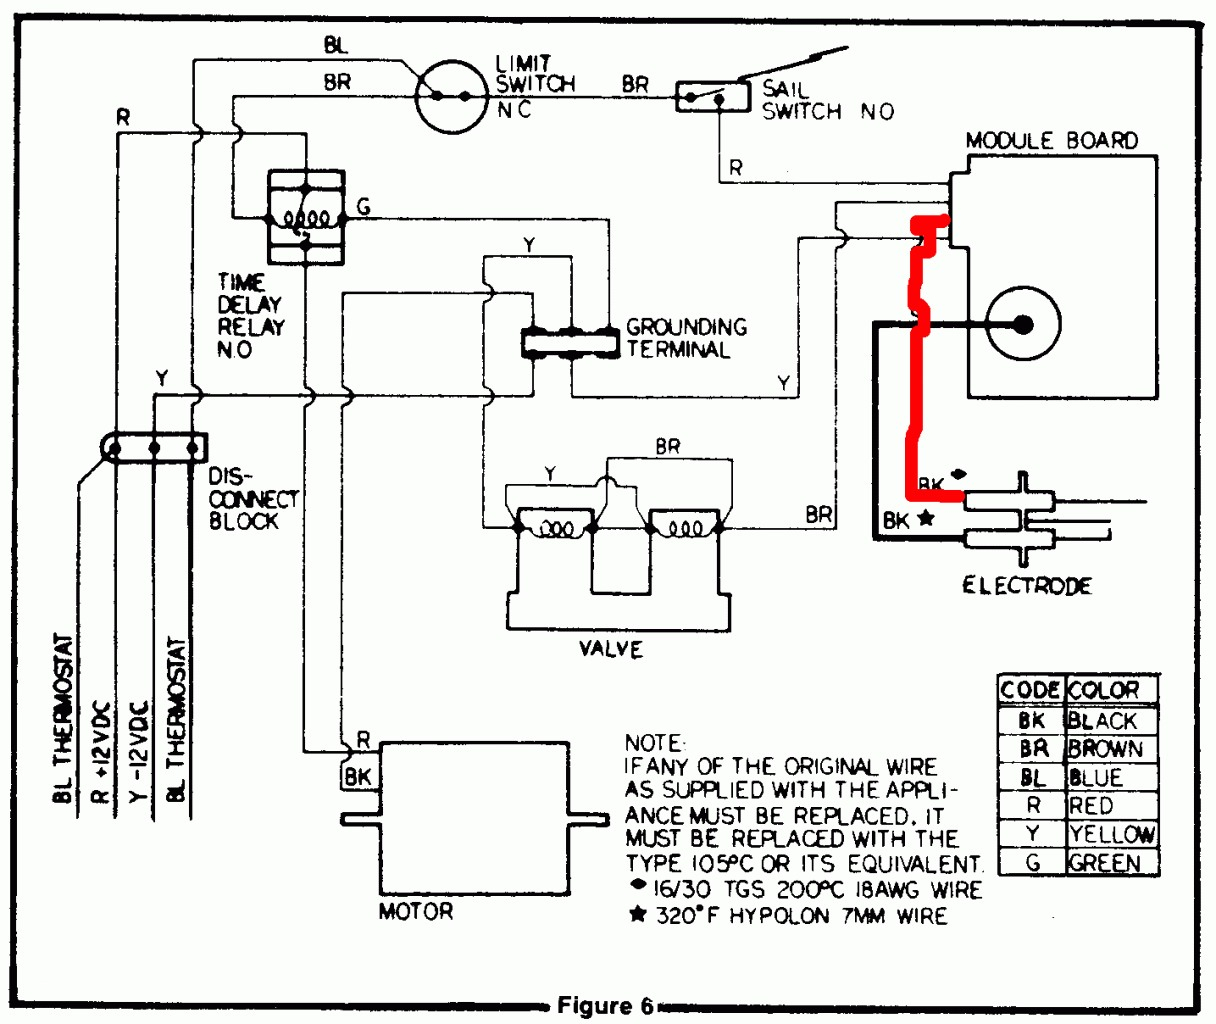 suburban water heater wiring diagram Download-Suburban Rv Furnace Wiring Diagram The At 11-e